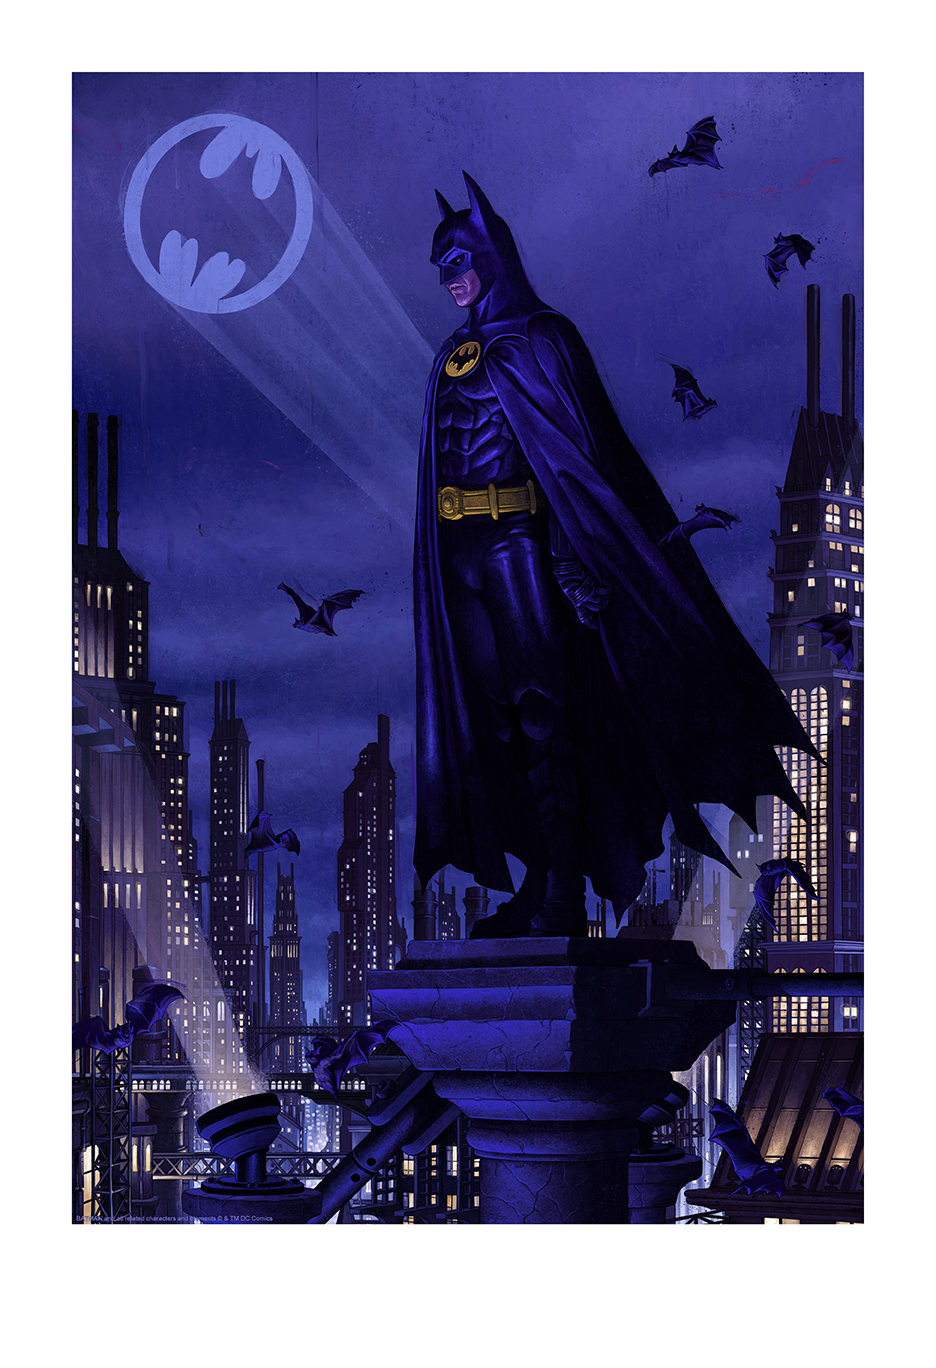 """Rory Kurtz """"Ikonescape: Batman"""" giclee with embossment, 13 x 19 inches, numbered edition of 350, available for $75"""